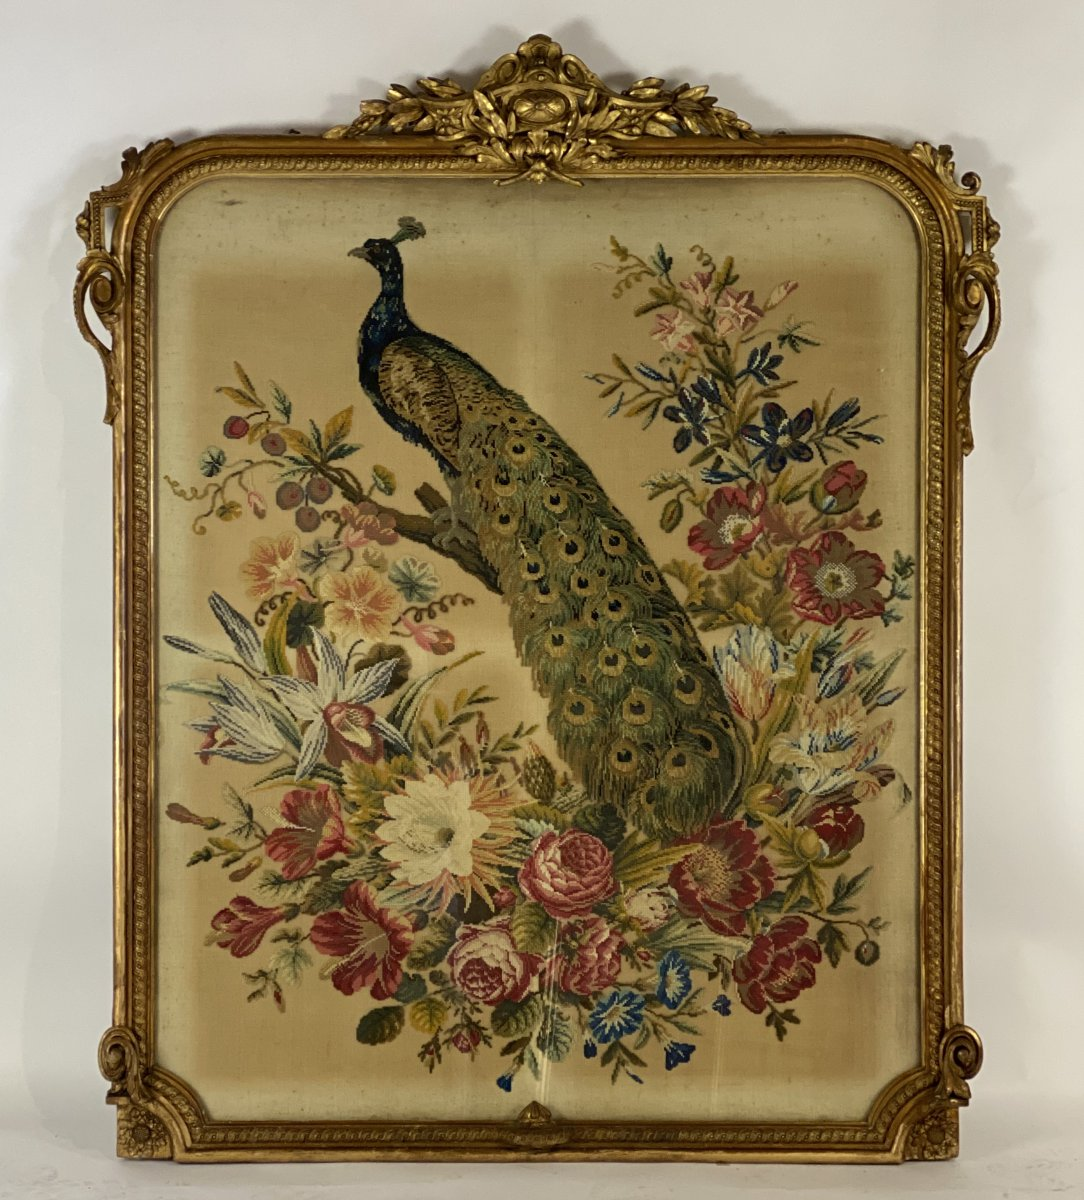 Cross Stitch Tapestry In A Louis XVI Style Frame Around 1900